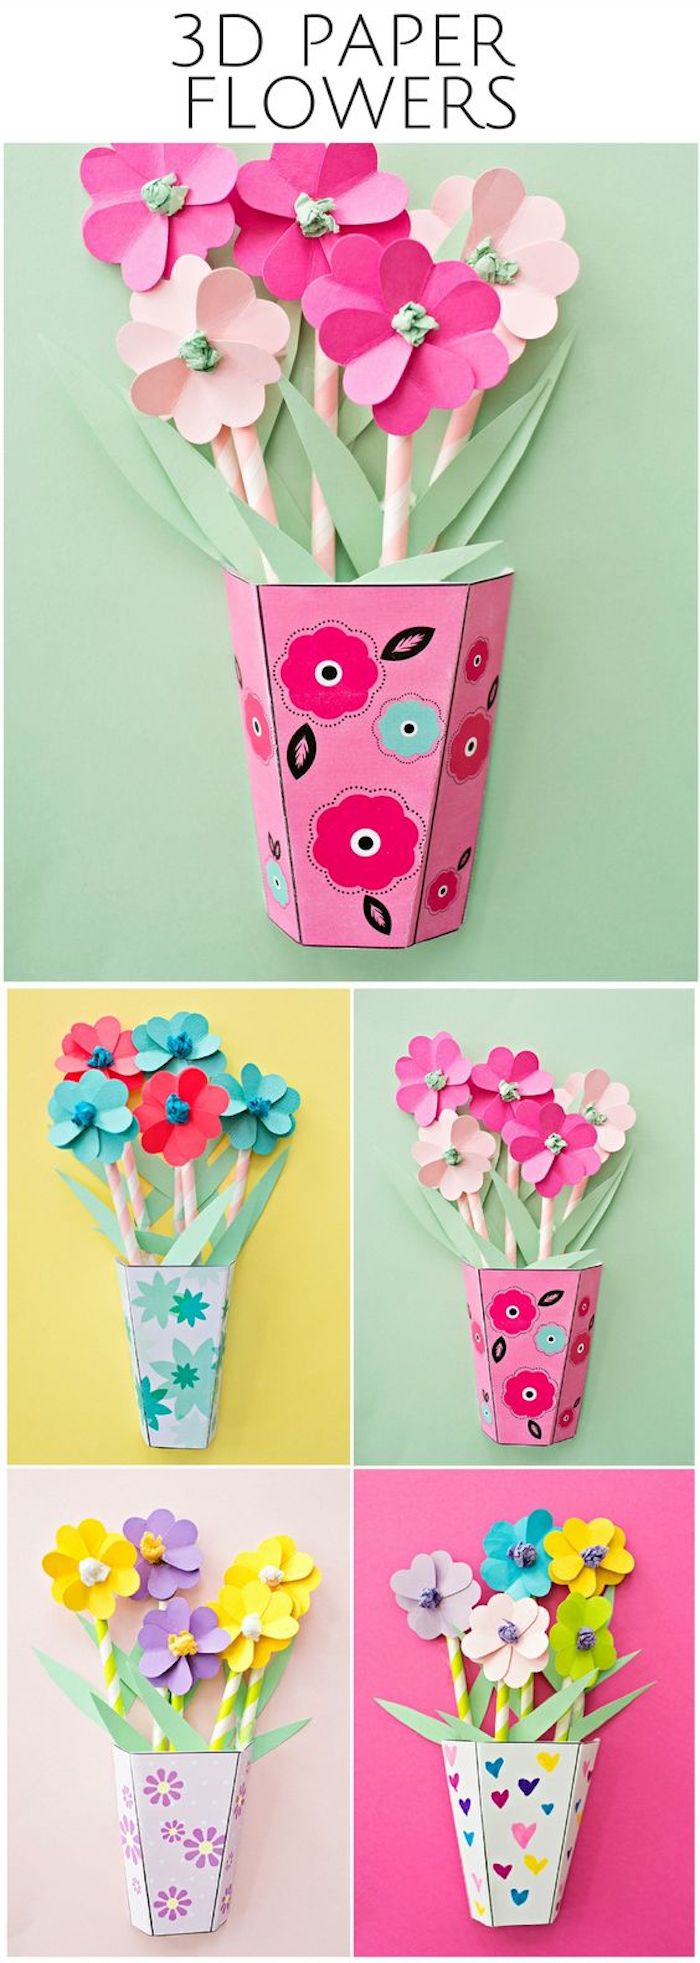 easy crafts for toddlers, 3d paper flowers, colourful paper pots, photo collage